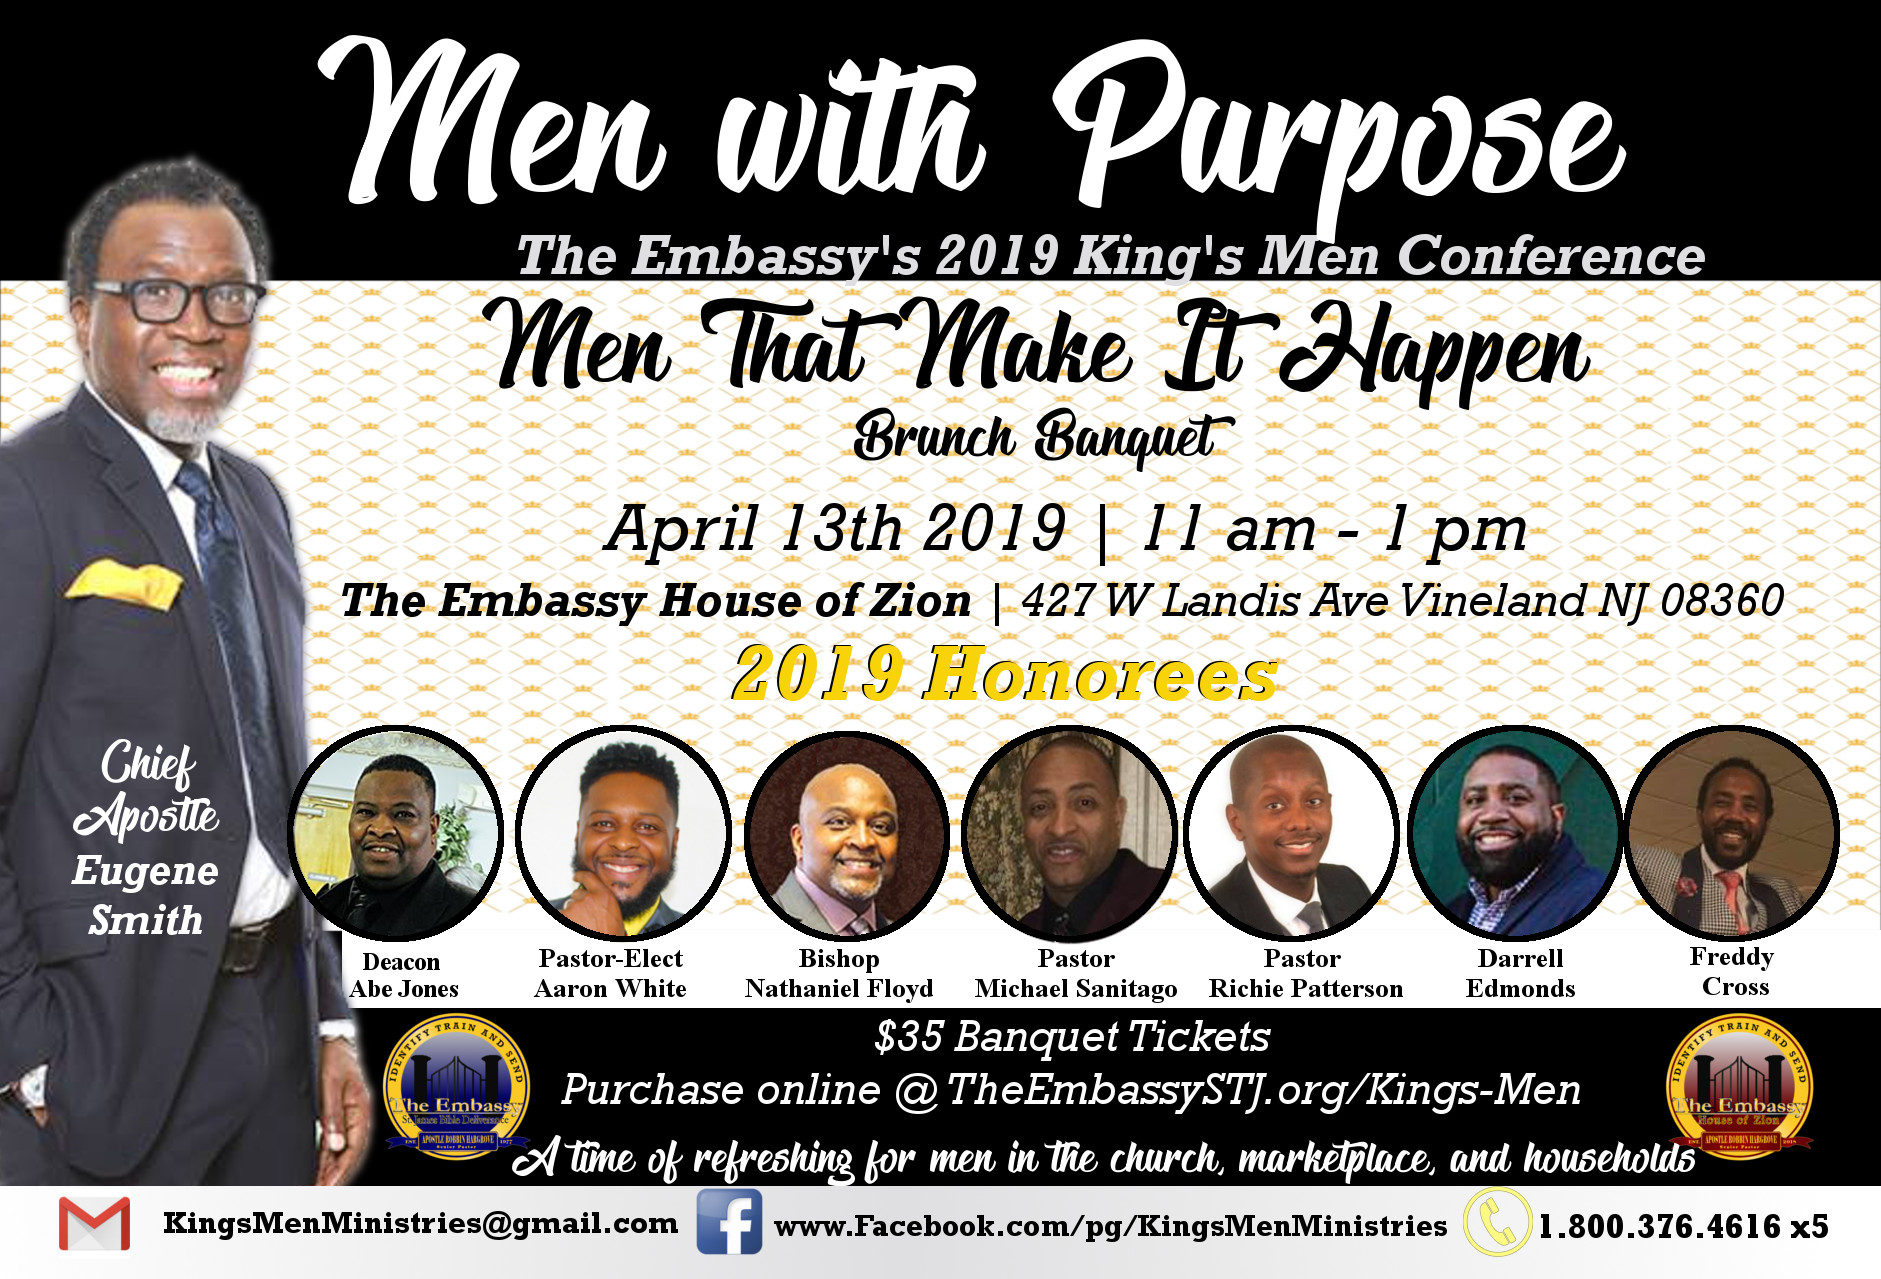 Men That Make It Happen - The King's Men Brunch Banquet is honoring 7 extraordinary men that are faithful and committed to ministry!